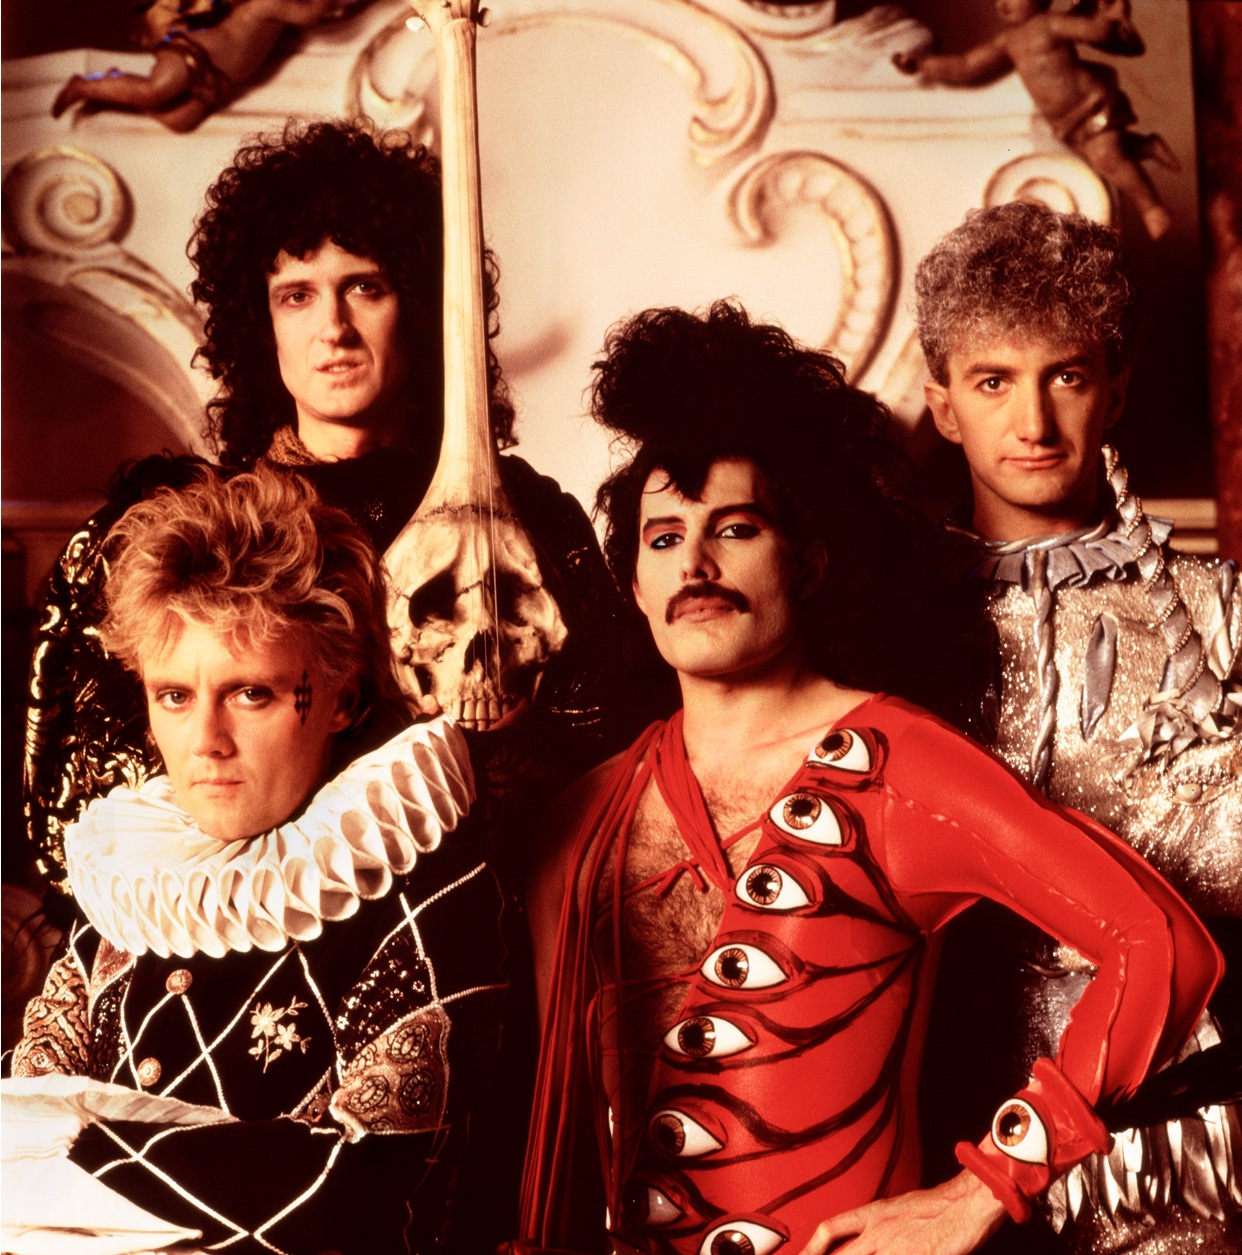 queen band quotes - photo #36